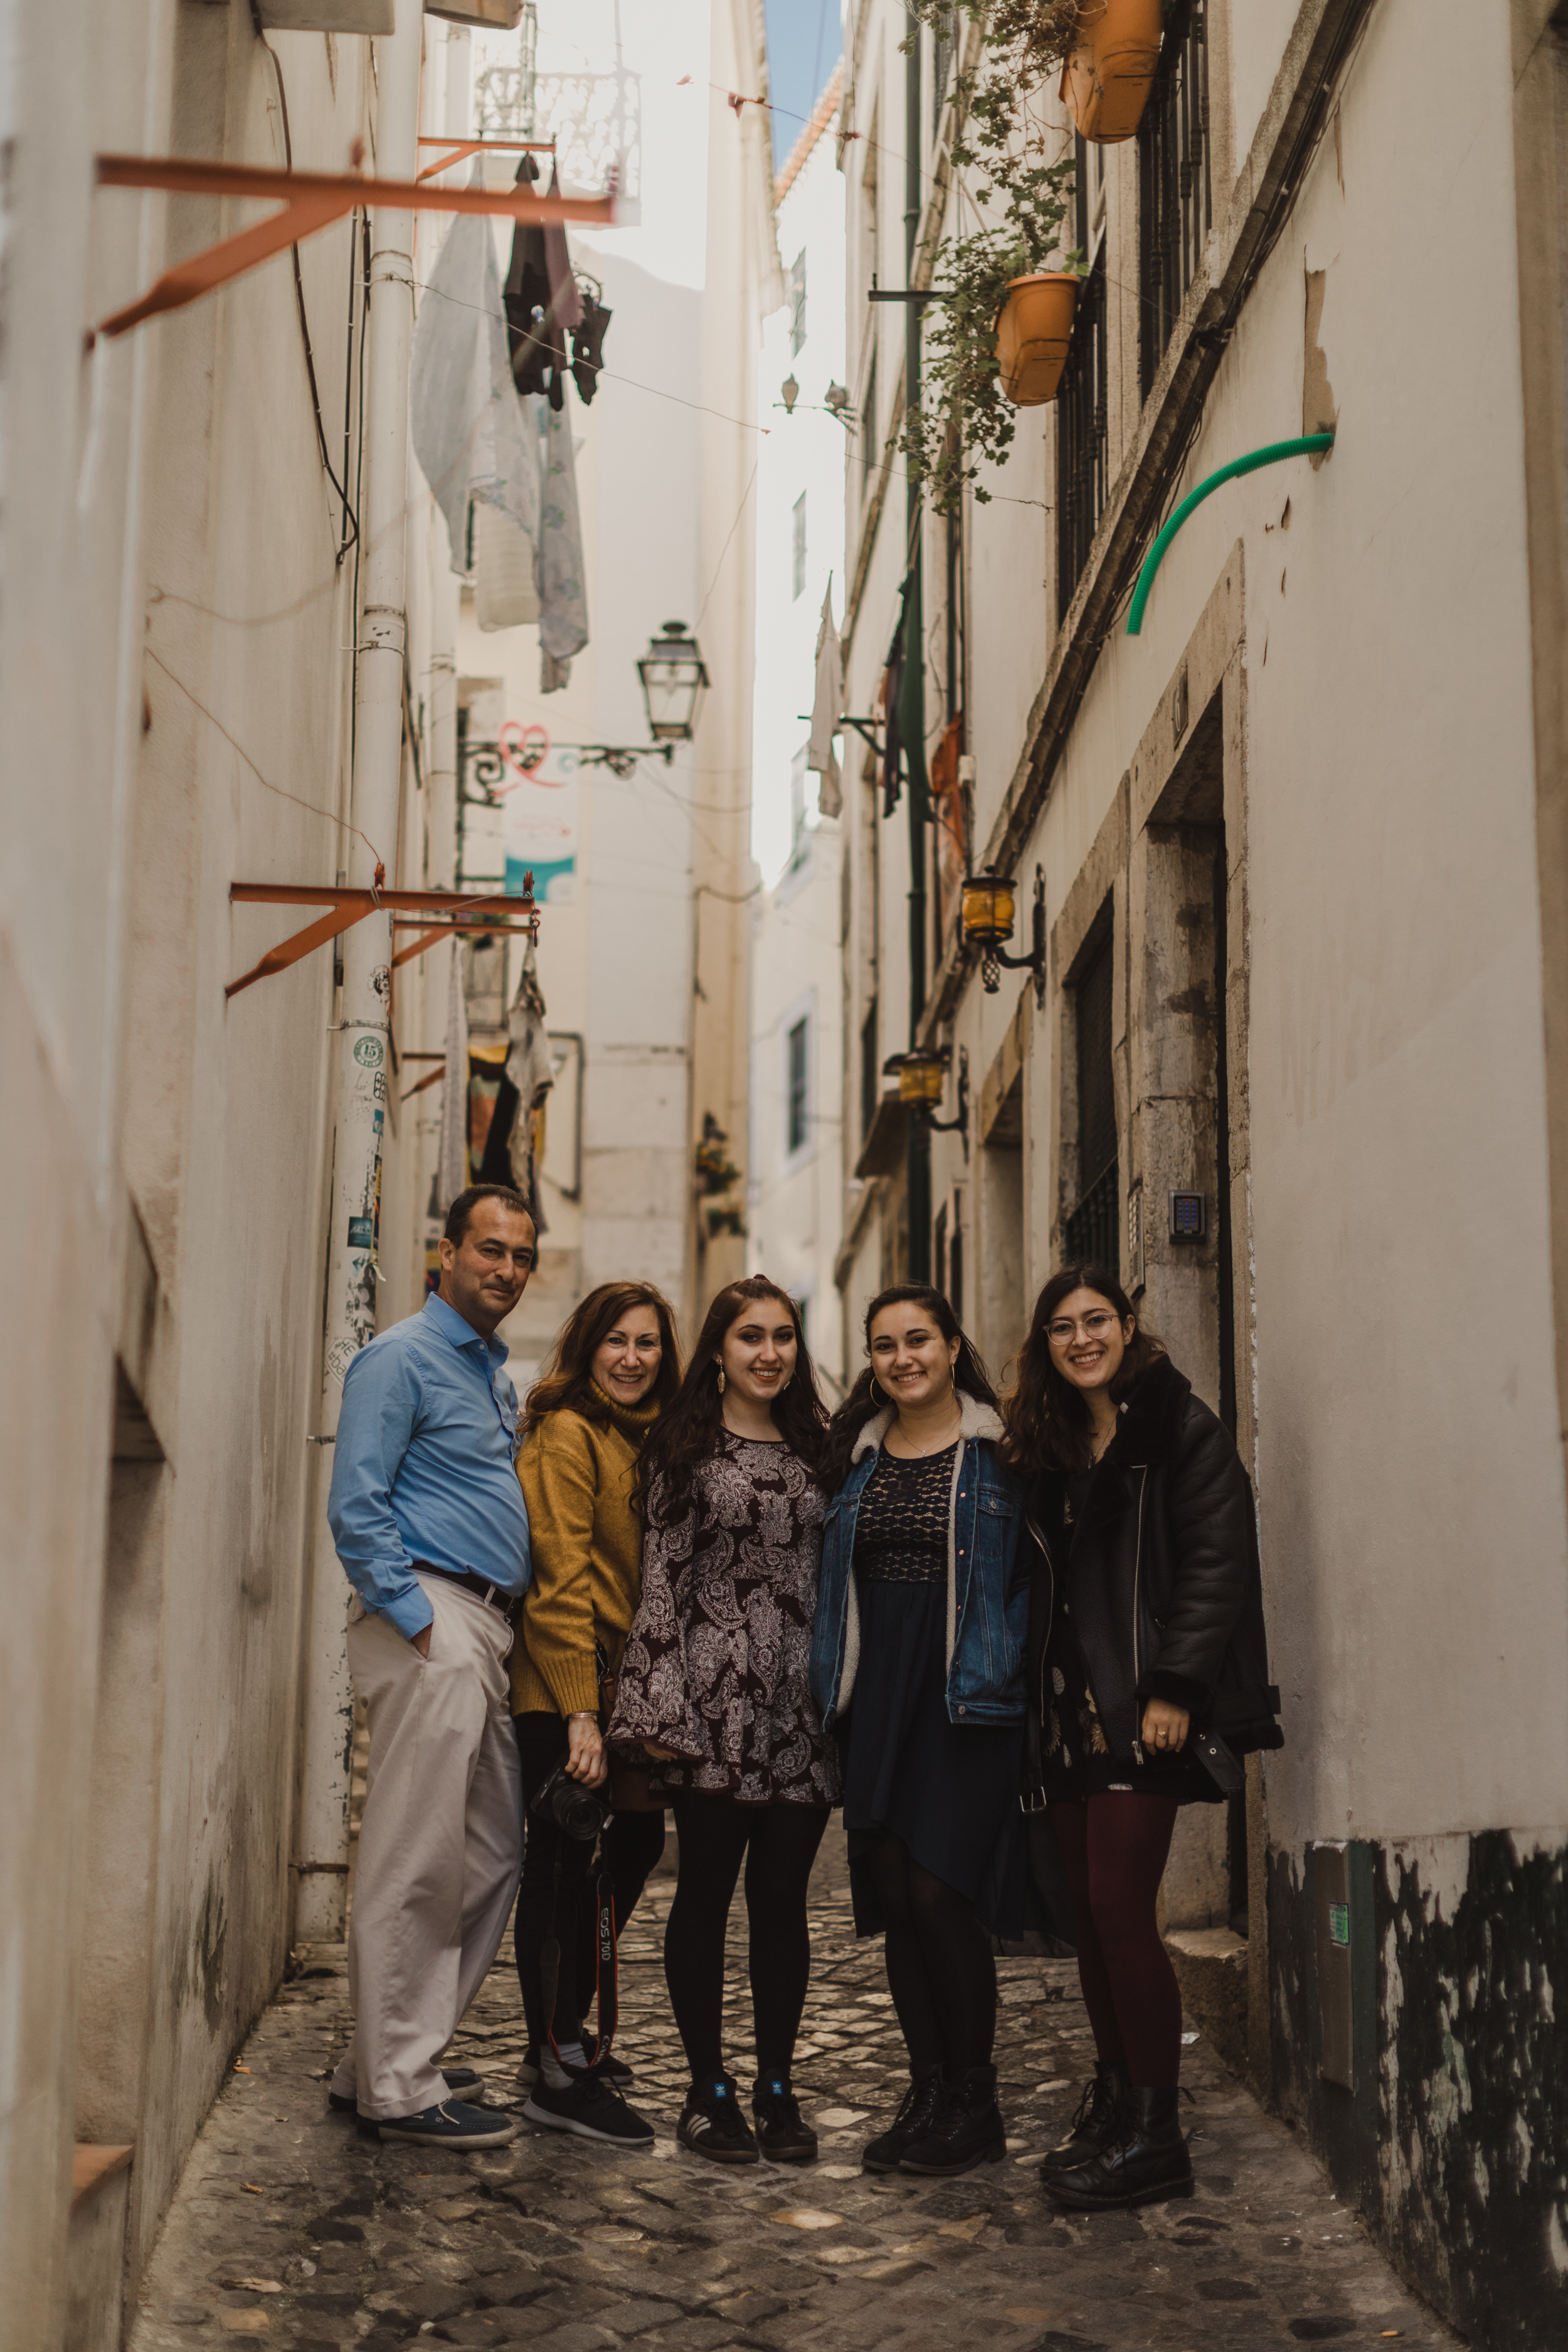 Another family photo, this time in the little streets of Alfama